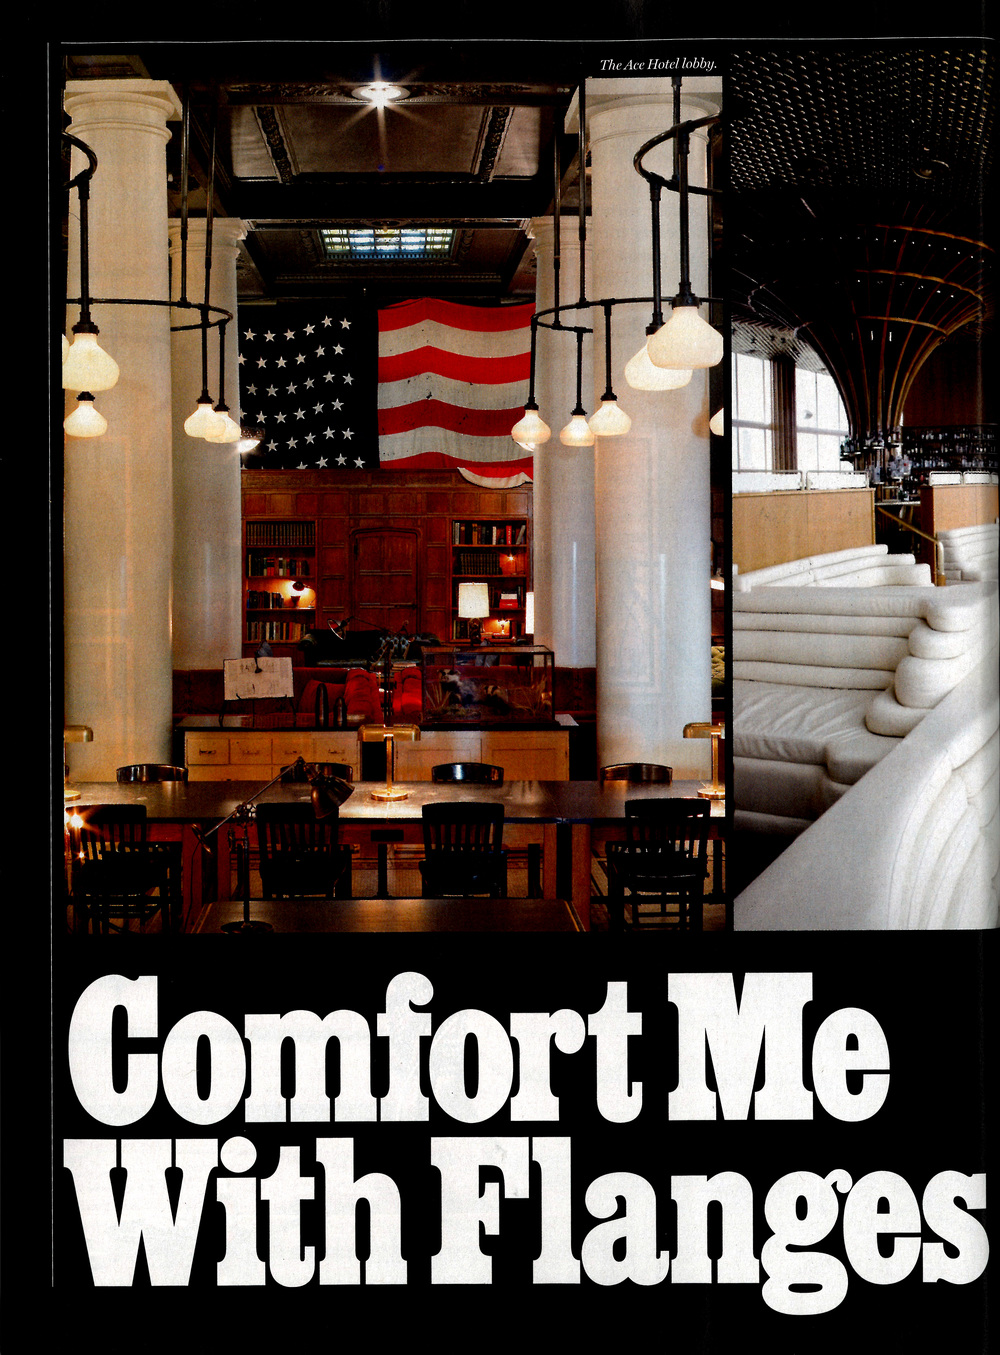 NY Magazine 2010.10_'Comfort Me with Flanges'_R&S Profile_p1 hi res.jpg